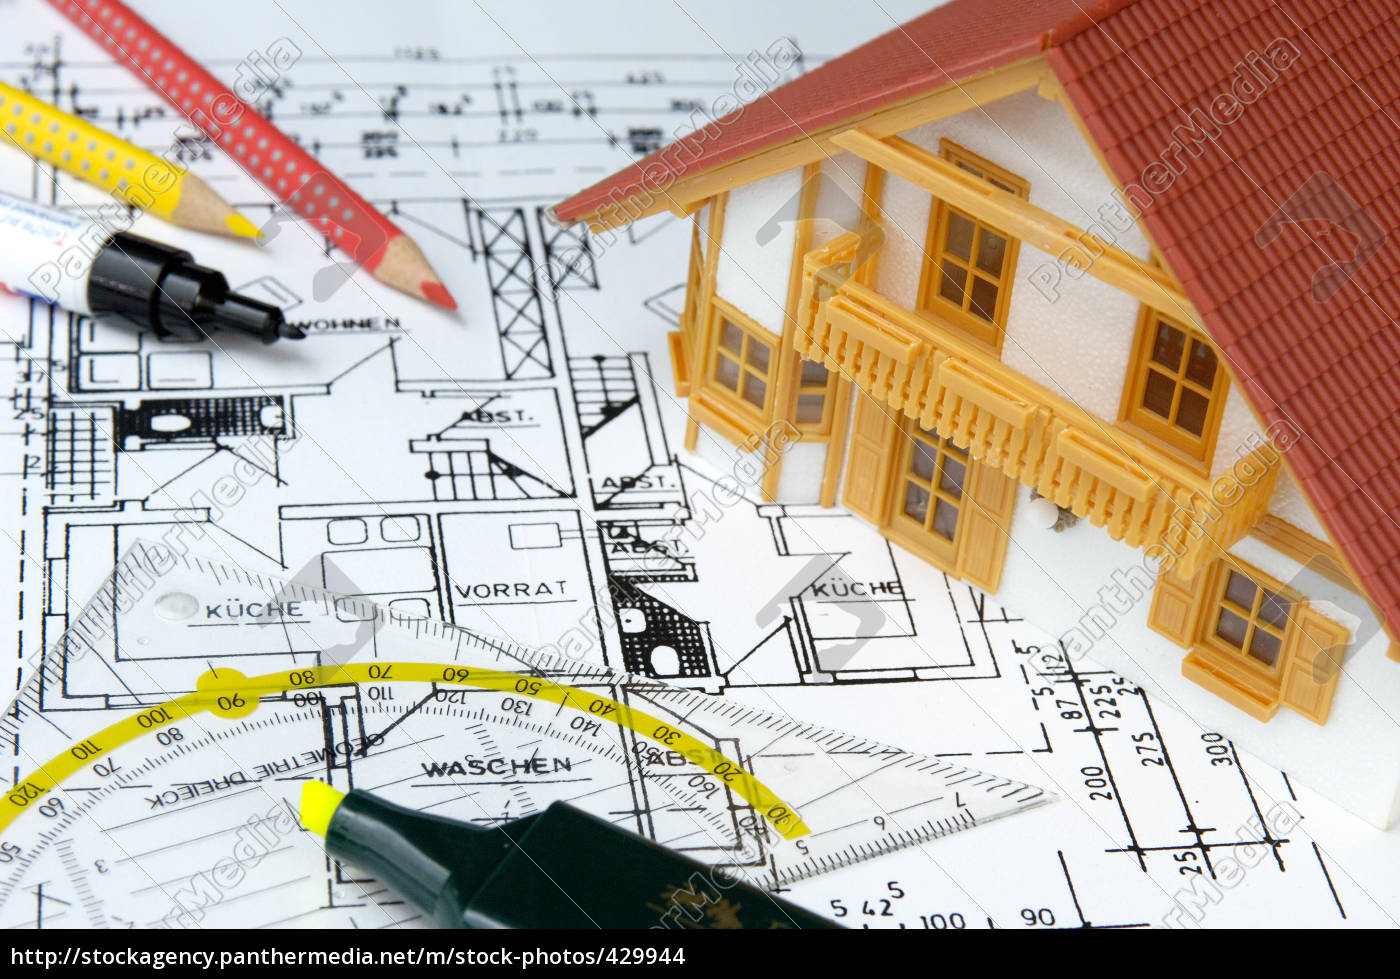 house, model, on, ground, plan, drawing - 429944